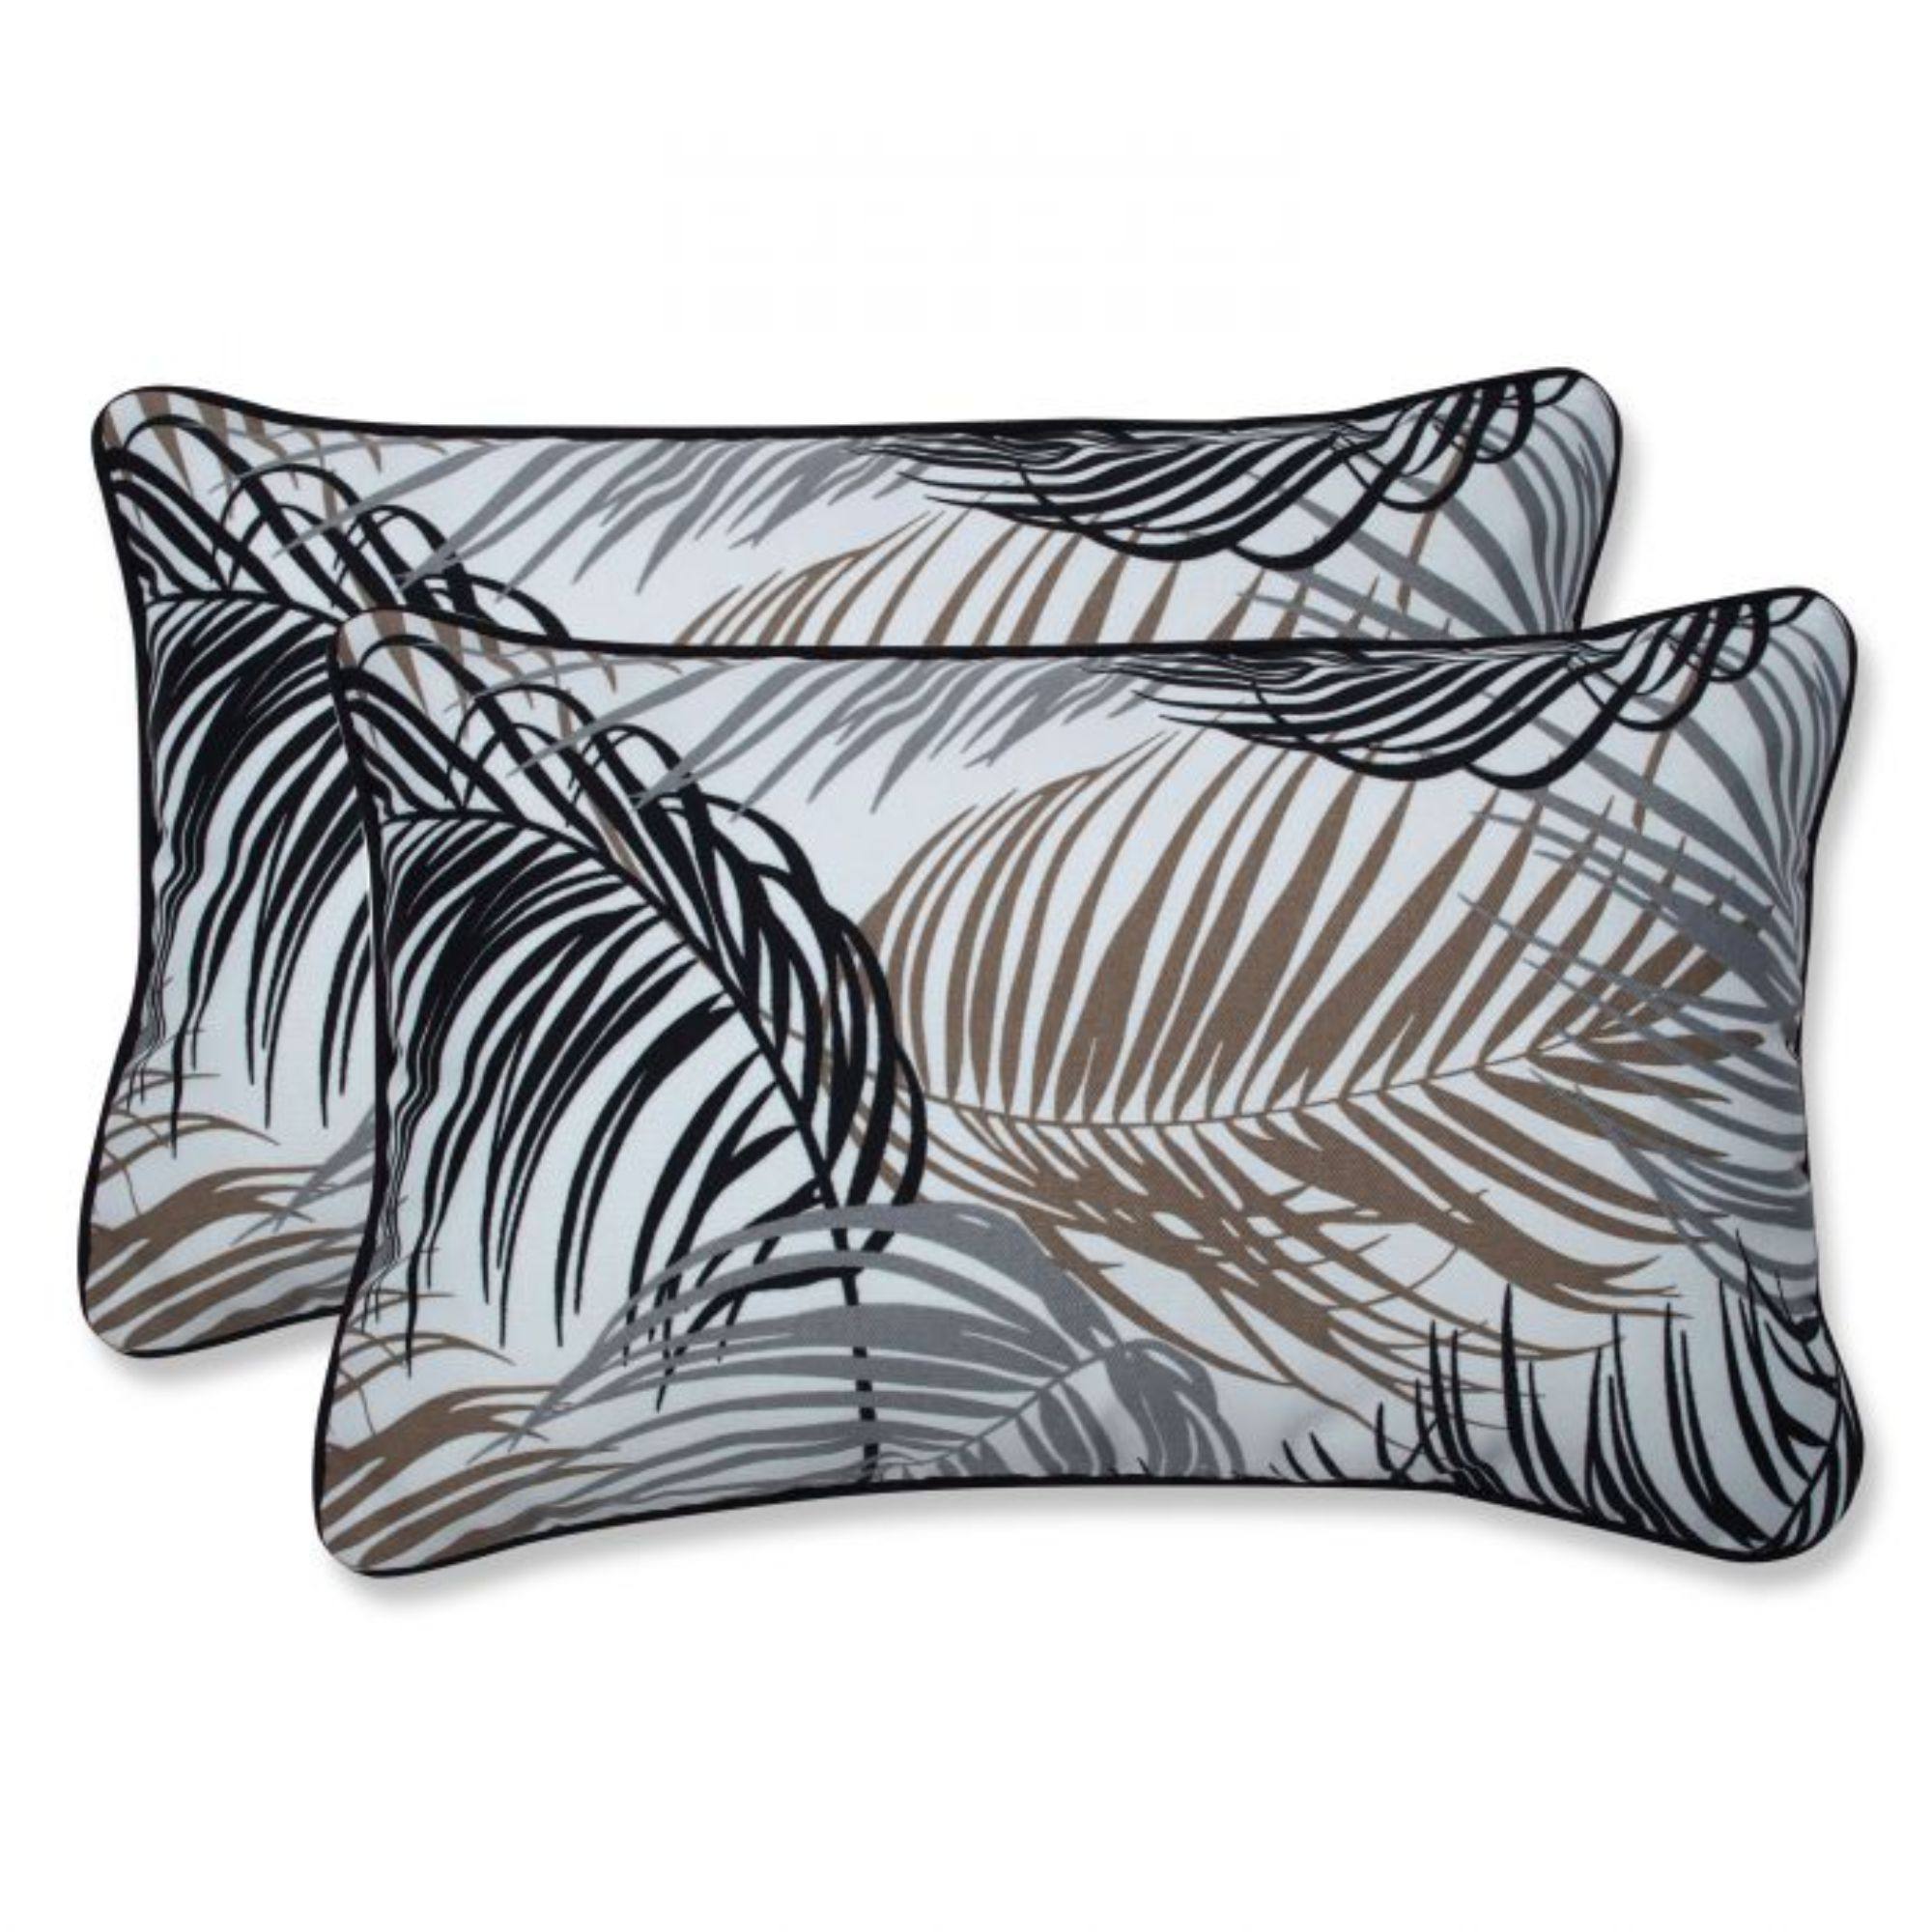 Set Of 2 White And Black Tropical Outdoor Patio Rectangular Throw Pillows 18 5 Throw Pillows Throw Pillow Sets Perfect Pillow